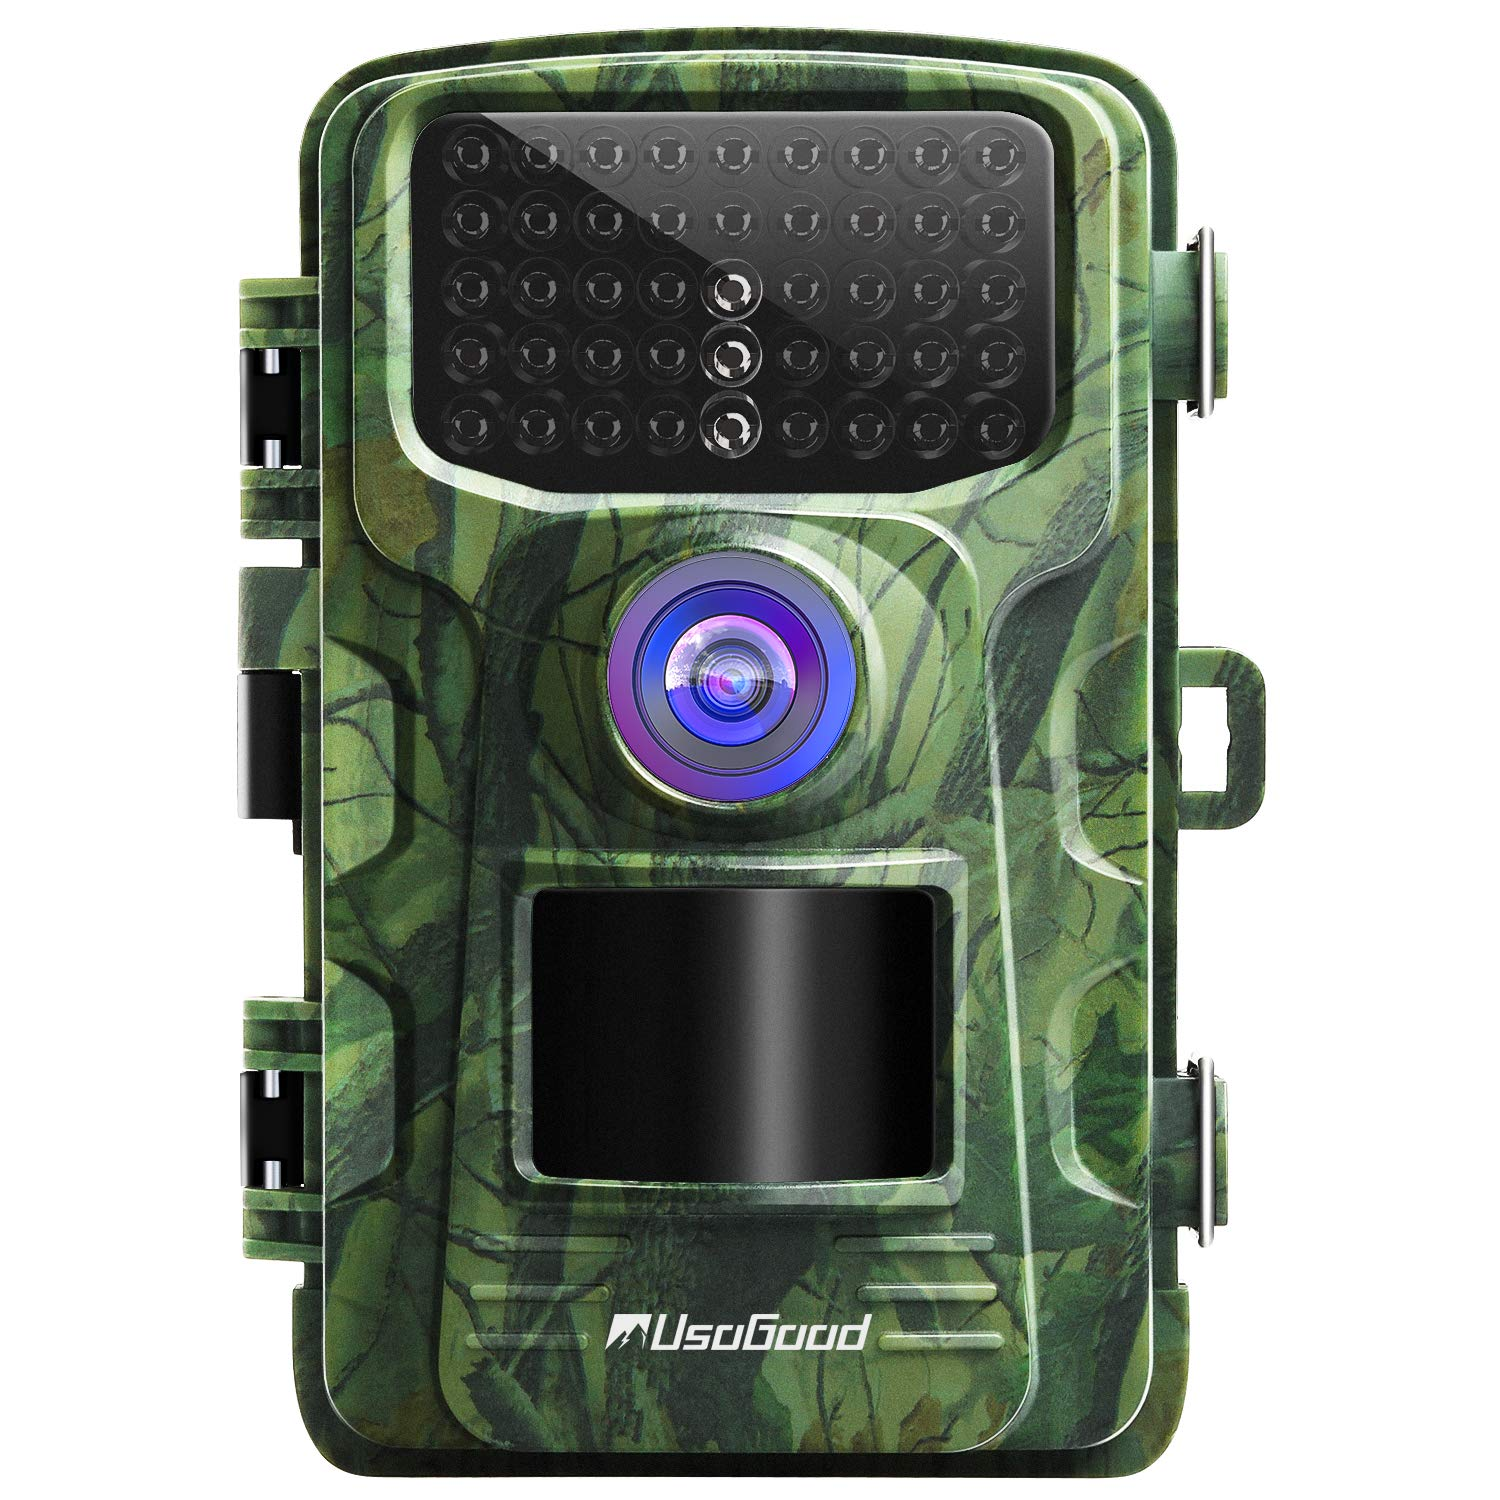 usogood Trail Camera 14MP 1080P No Glow Game Hunting Camera with Night Vision Motion Activated IP66 Waterproof 2.4'' LCD for Outdoor Wildlife, Garden, Animal Scouting and Home Security Surveillance